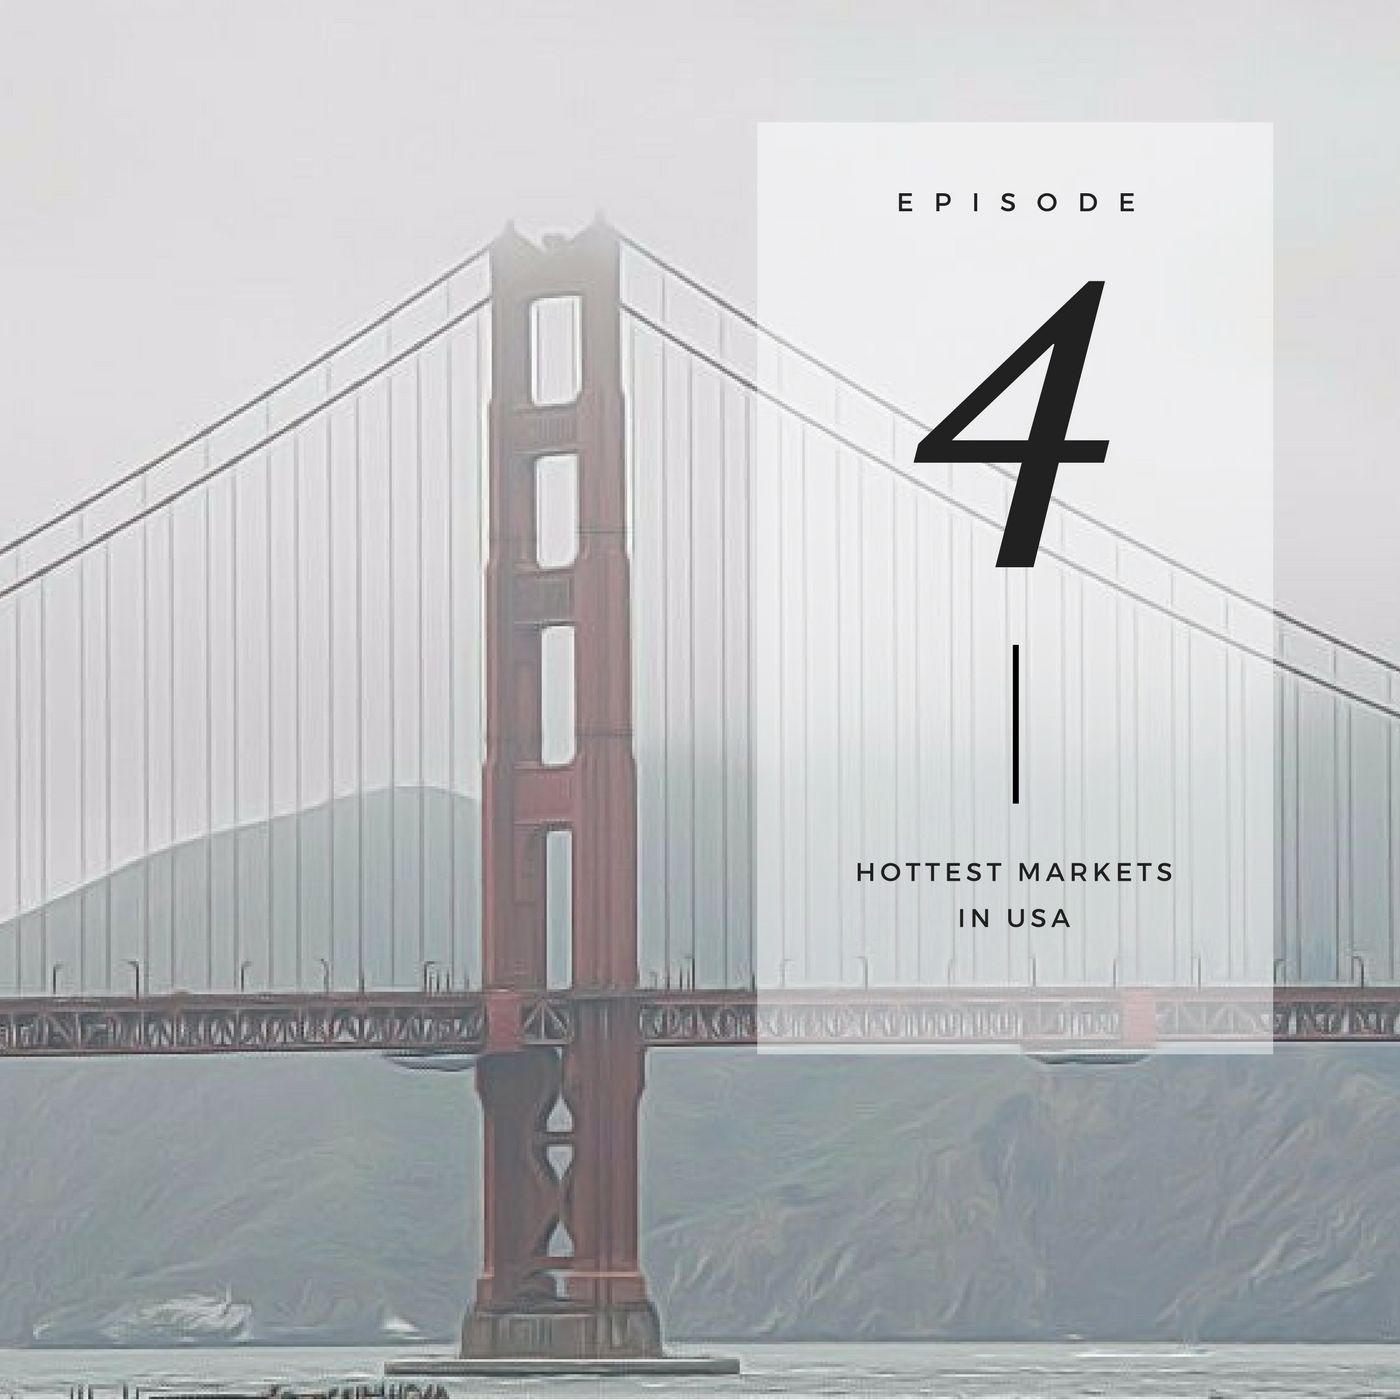 Hottest Markets in USA